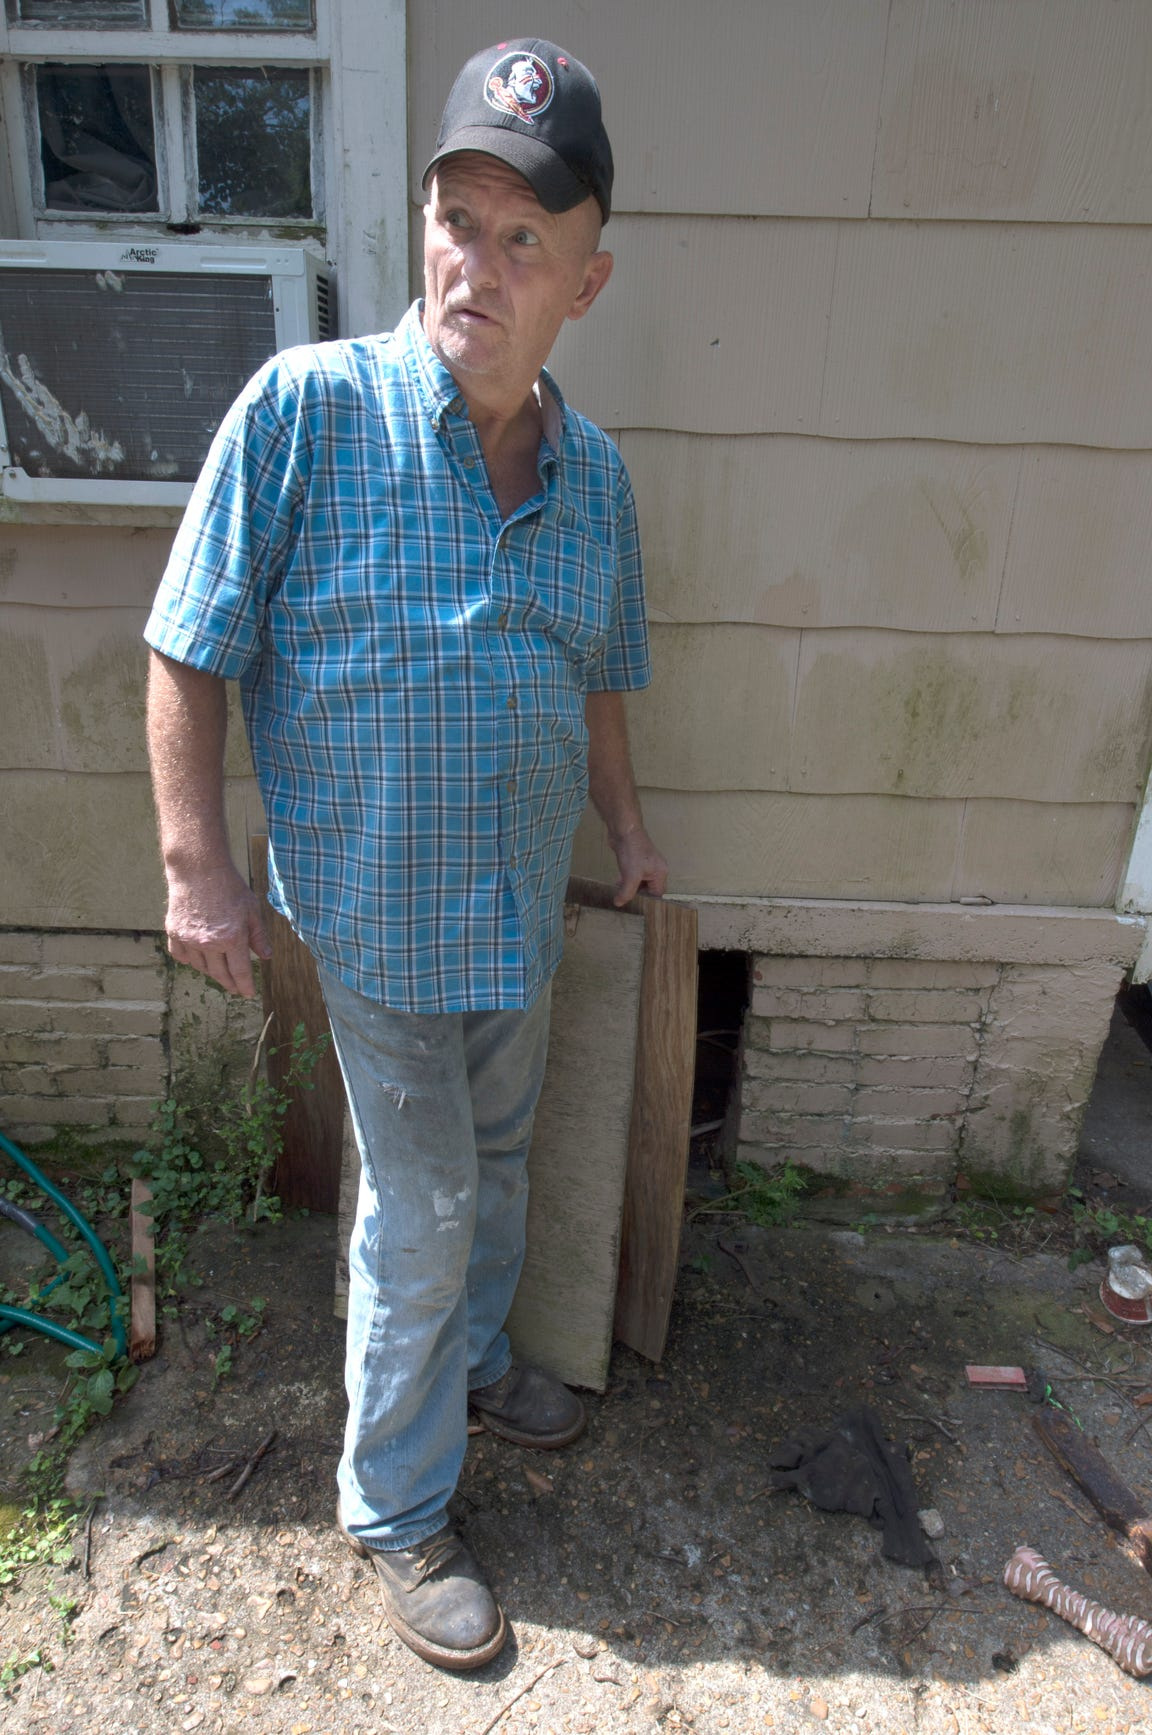 Jeffrey Armstrong pulls back the plywood to show the crawl space beneath his mother's former rental home. In 2001, he said he found .380-caliber automatic pistol in the space and thought it might have something to do with the quadruple murder at Tardy Furniture of 1996. A .380 gun was used in those killings, but no murder weapon was ever found. Thursday, July 19, 2018.